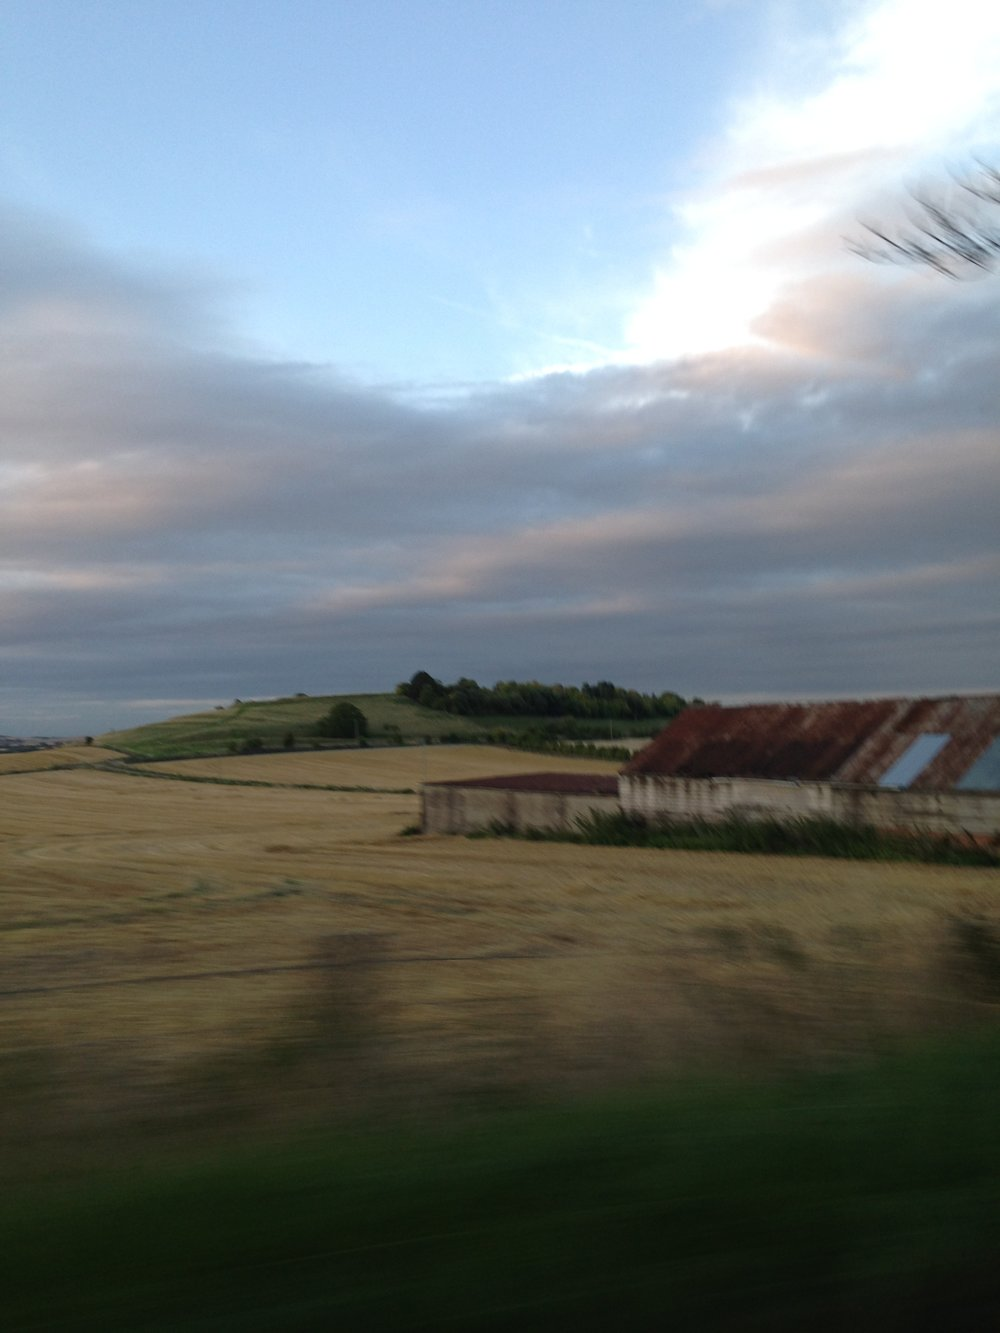 ^ Countryside whizzing by